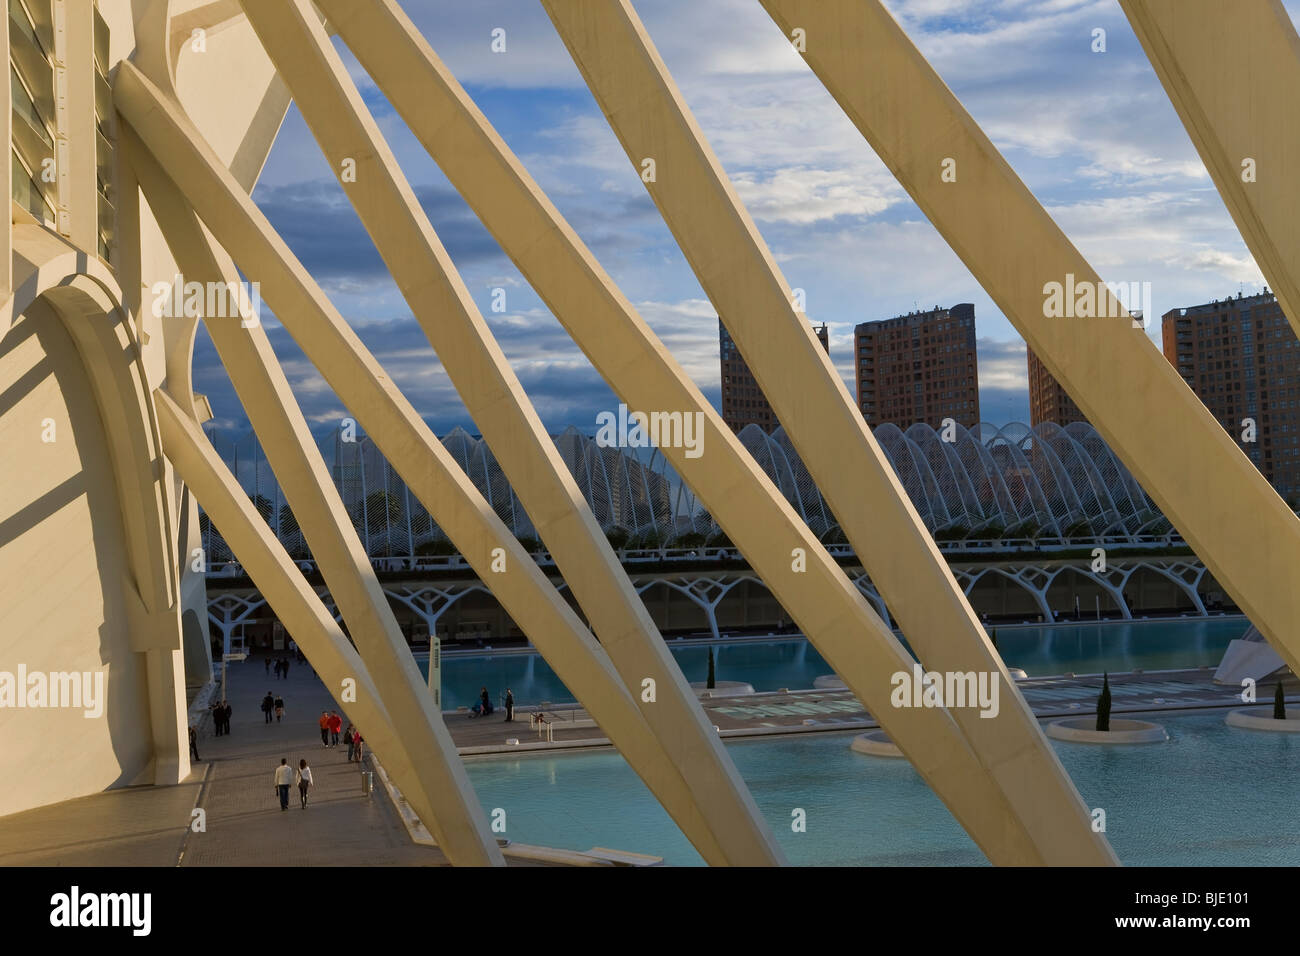 City of Arts and Sciences building,a combined science planetarium oceanographic park and arts centre, Valencia, - Stock Image